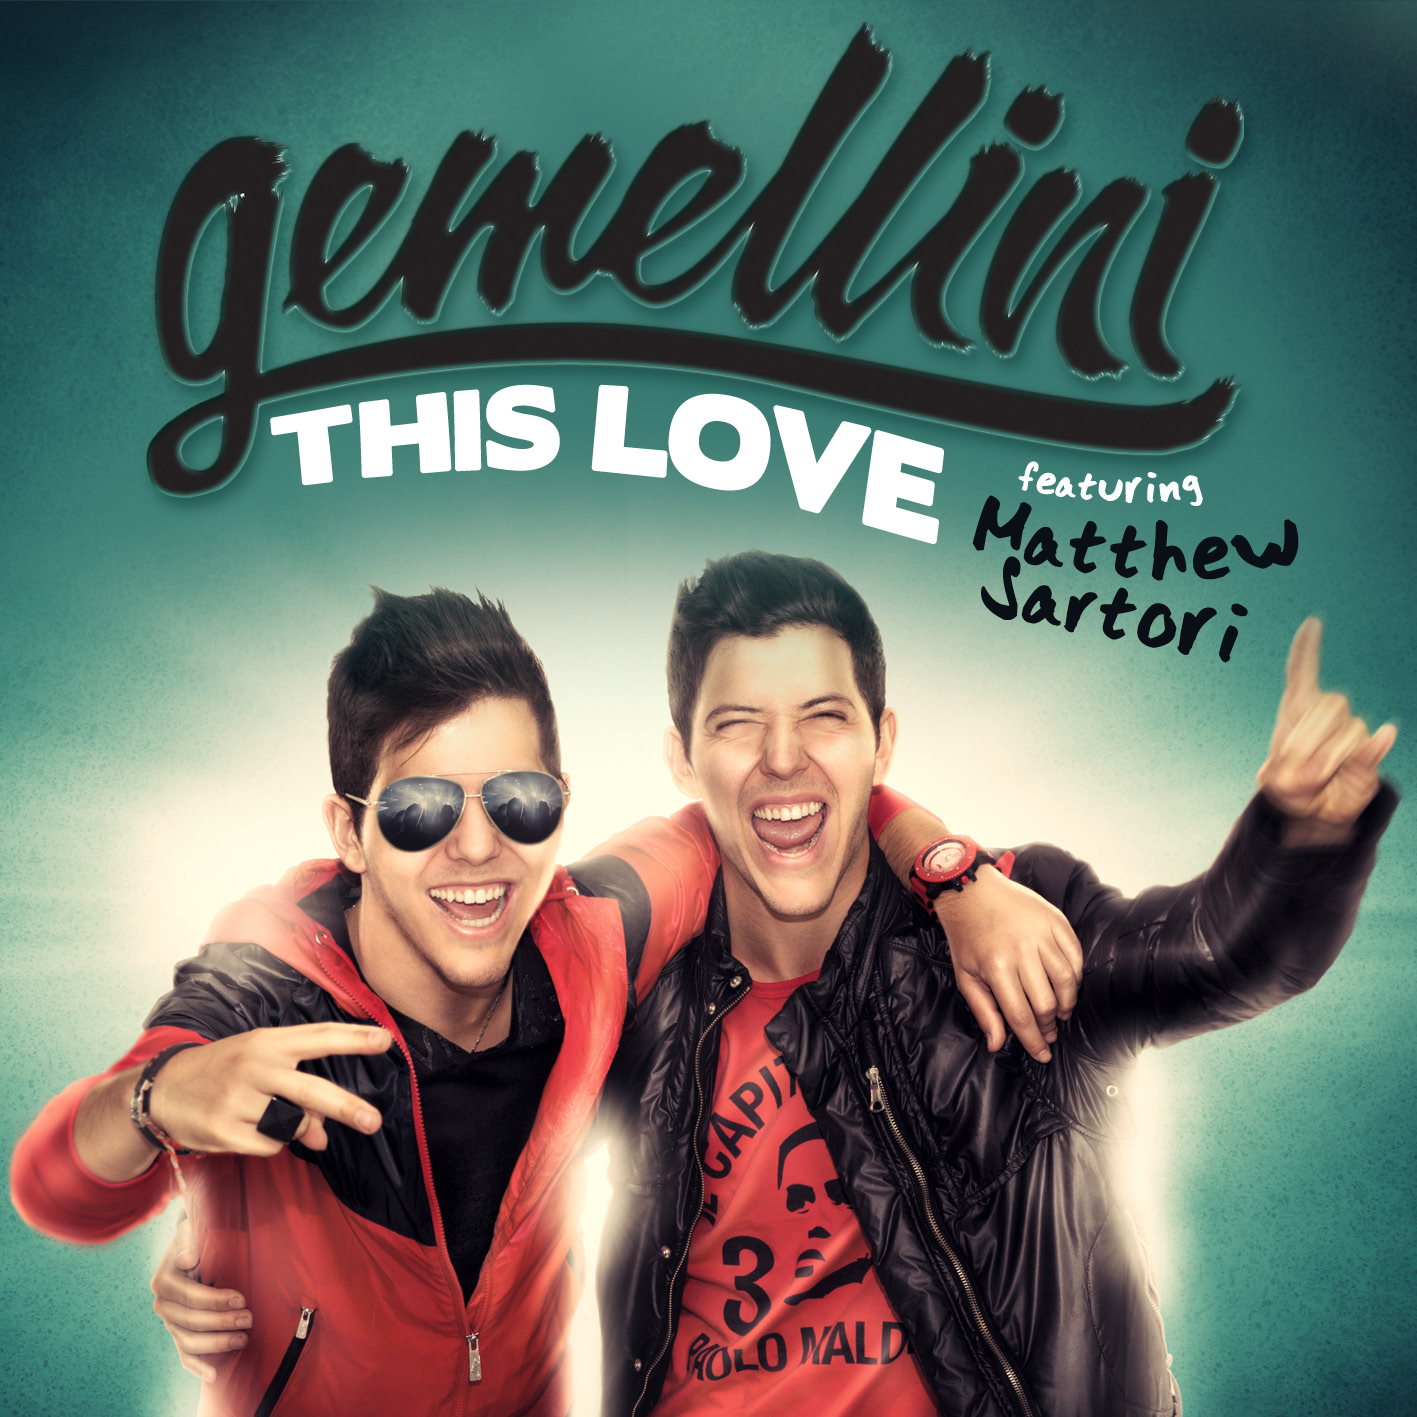 Gemellini feat. Matthew Sartori - This Love (Giddy Vocal Remix)